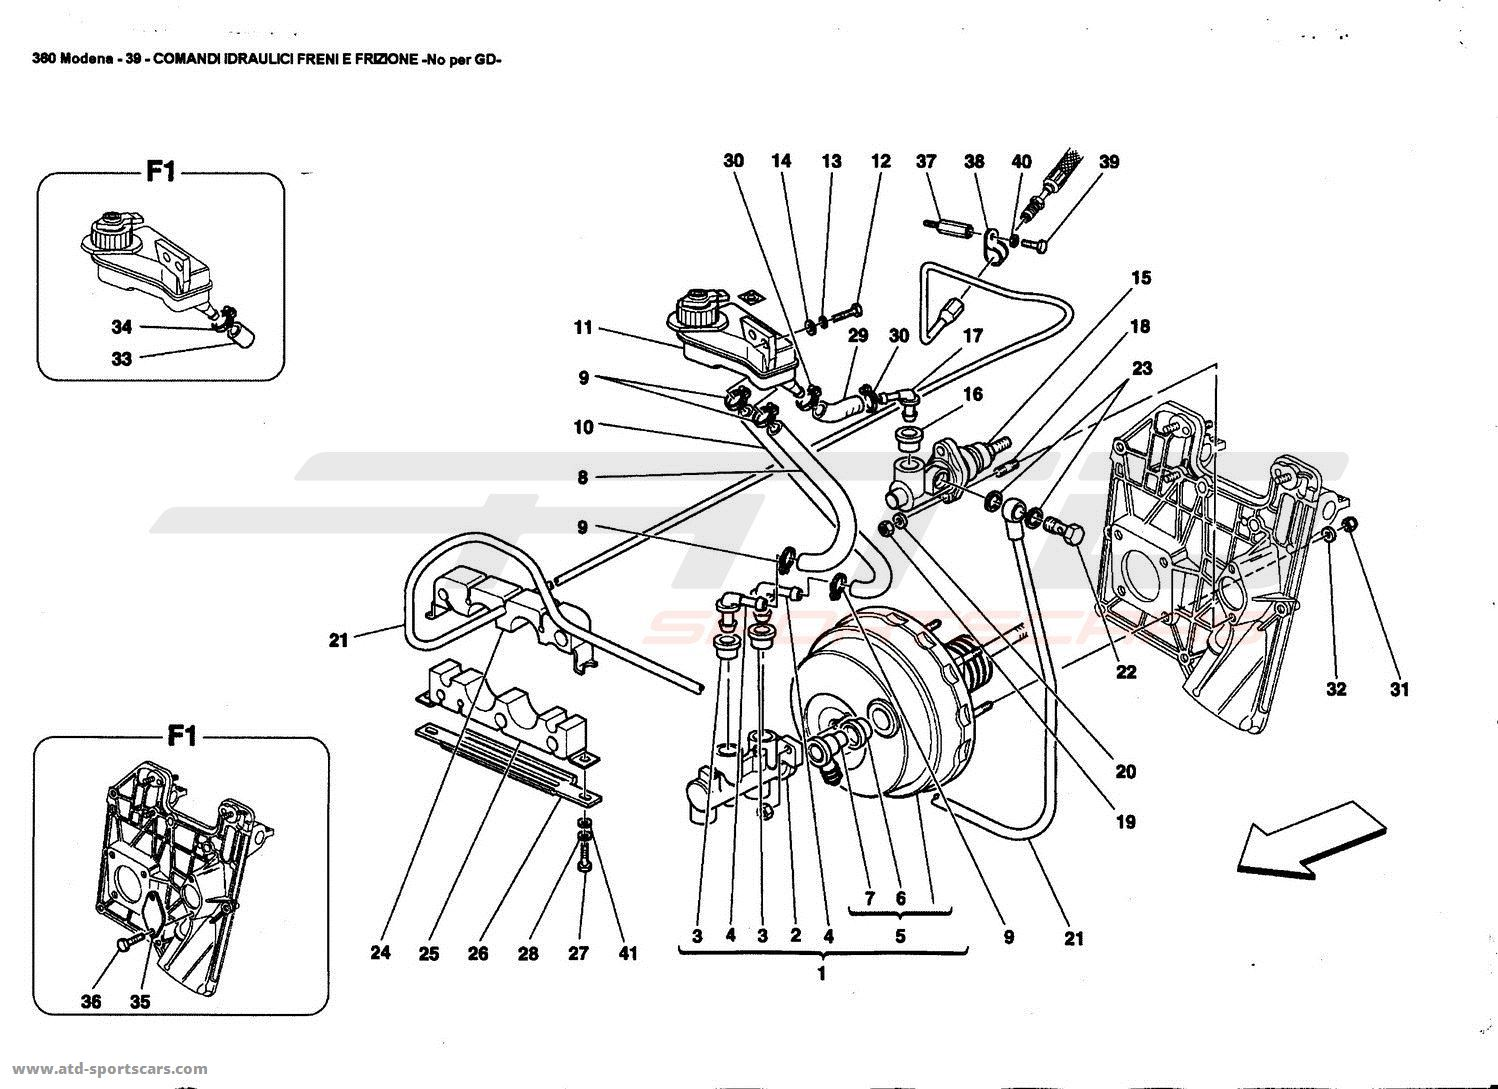 BRAKES AND CLUTCH HYDRAULIC CONTROLS